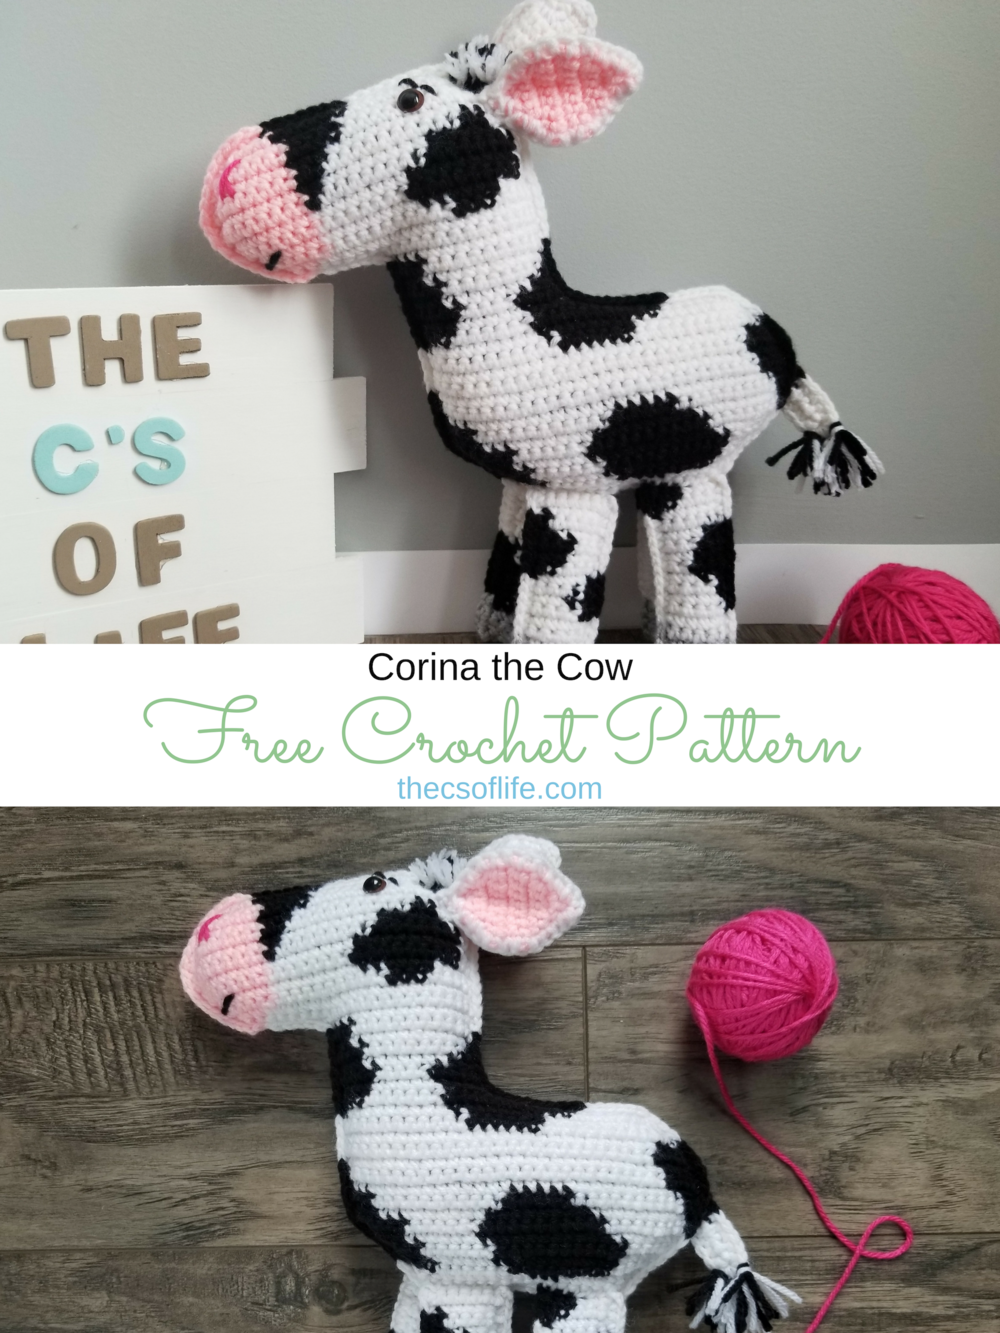 Corina the Cow - Free Crochet Pattern